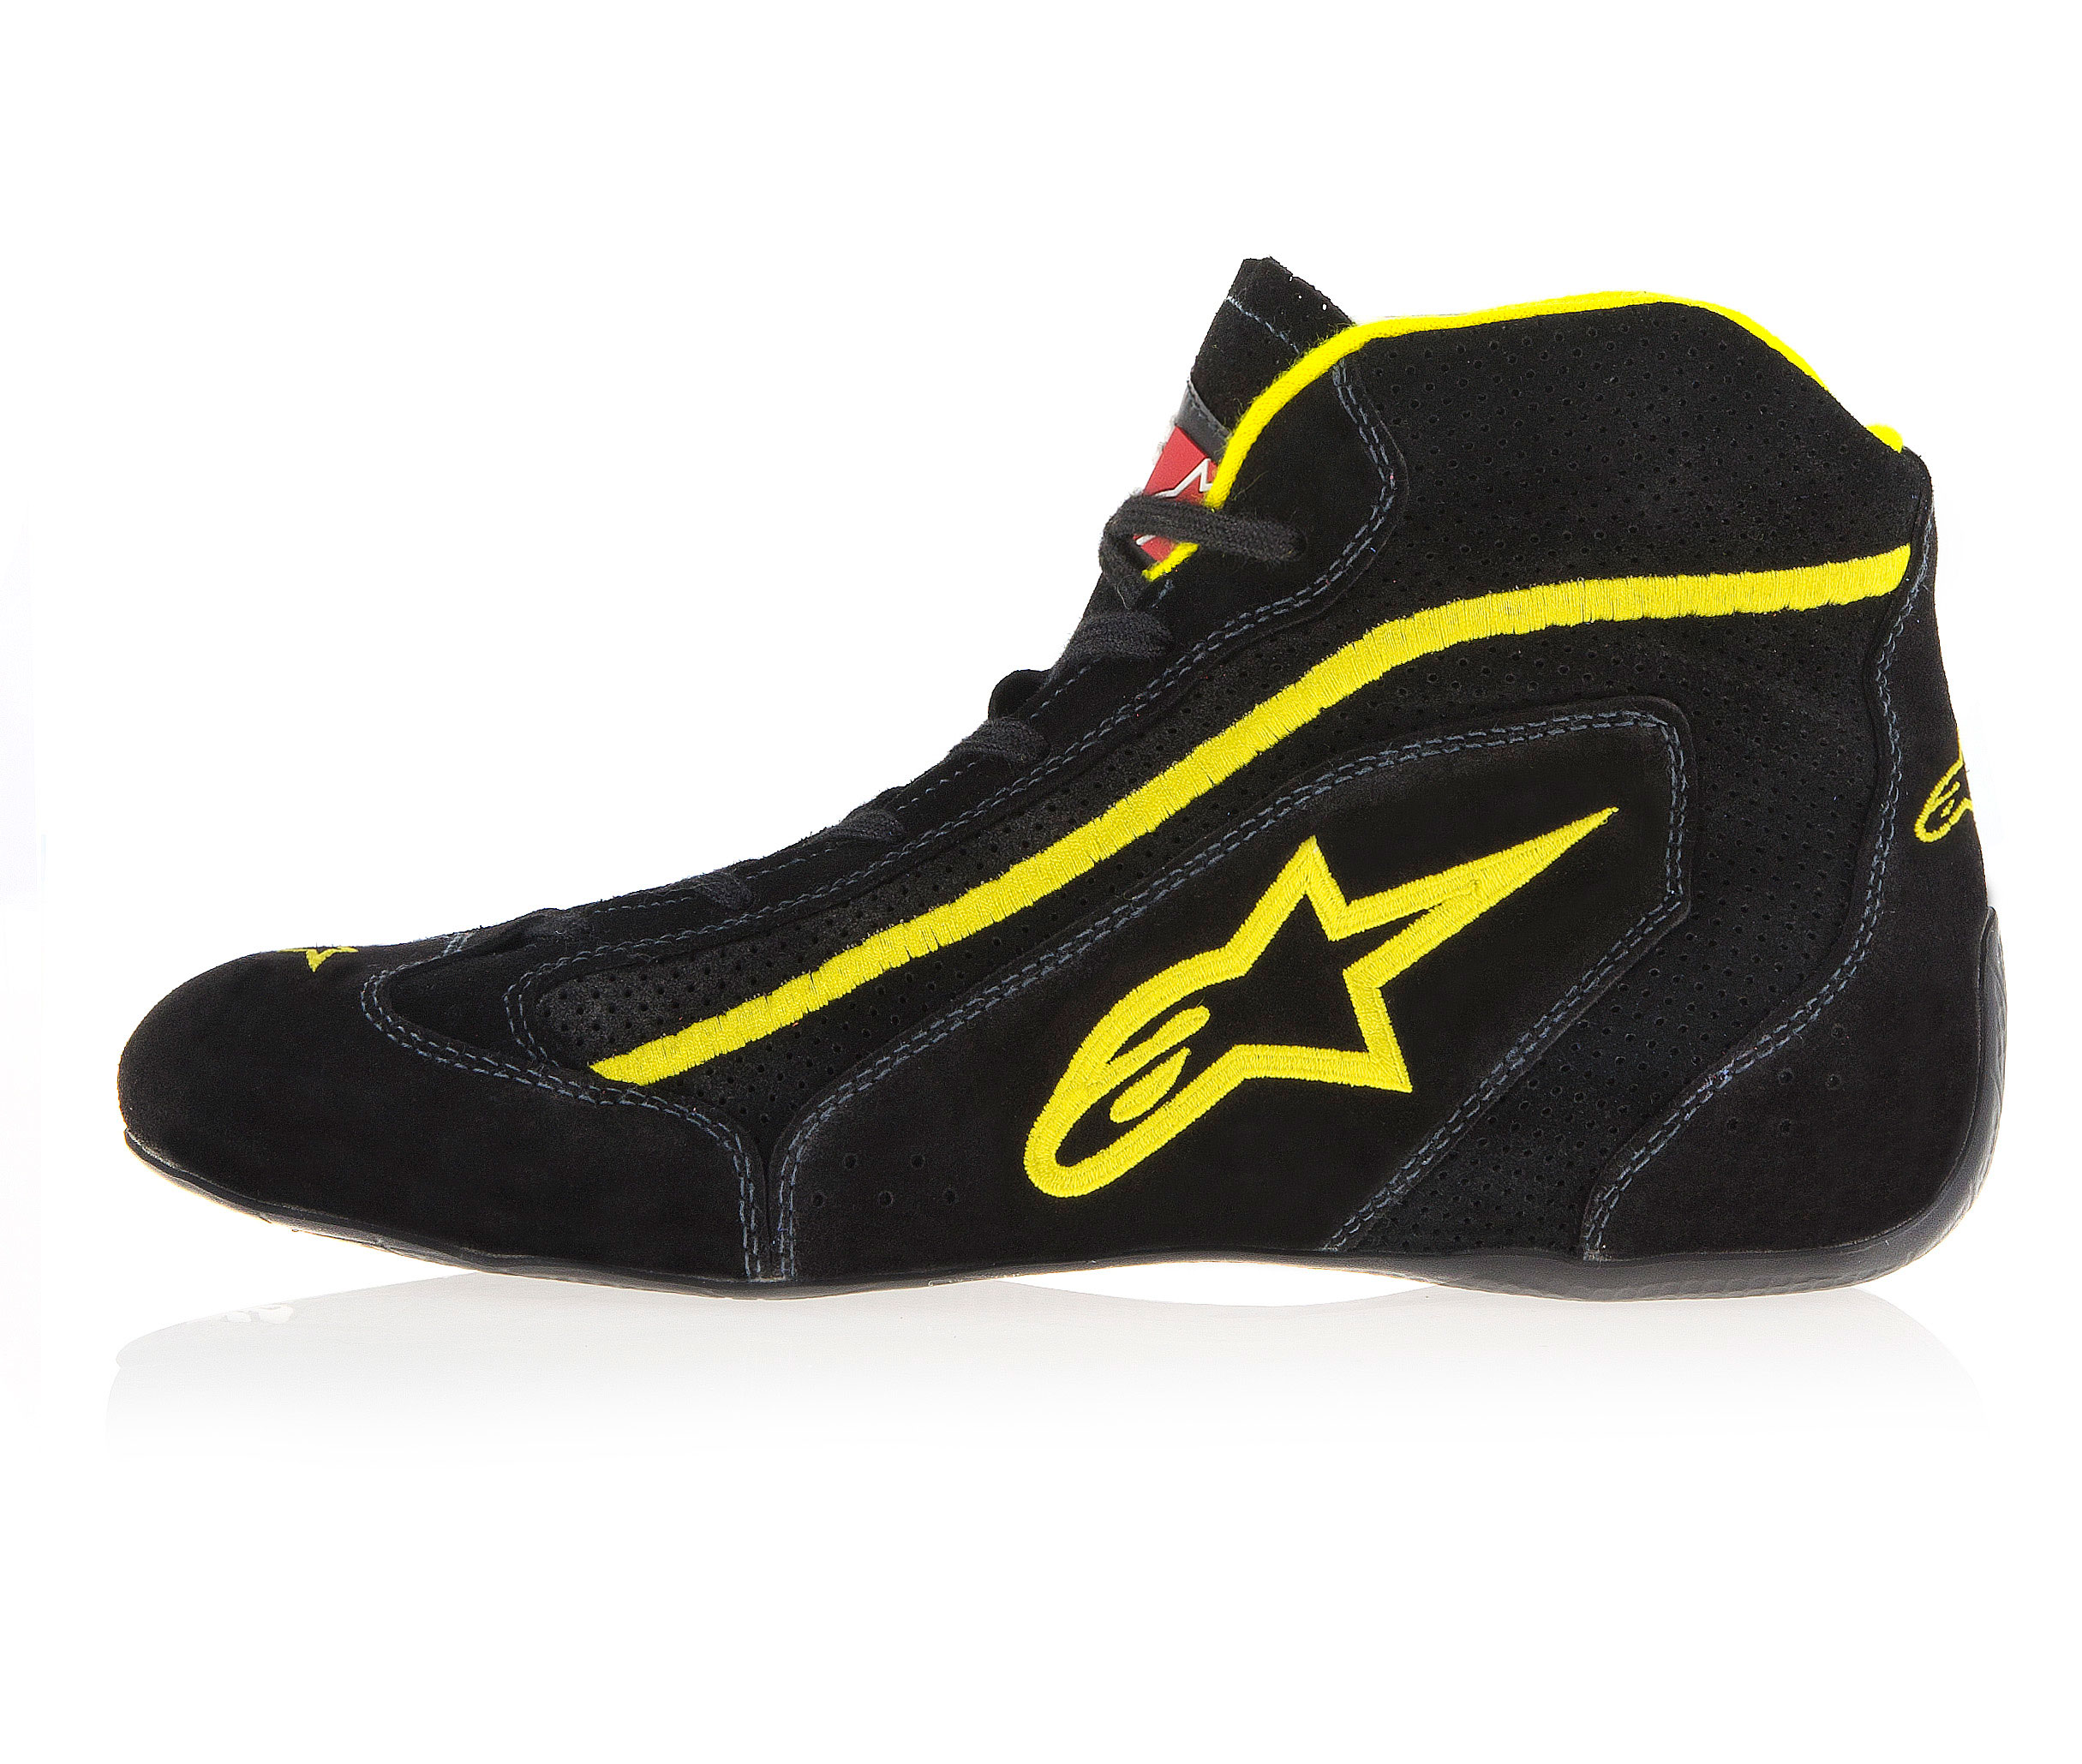 SP_SHOE_black_yellowfluo_rot2